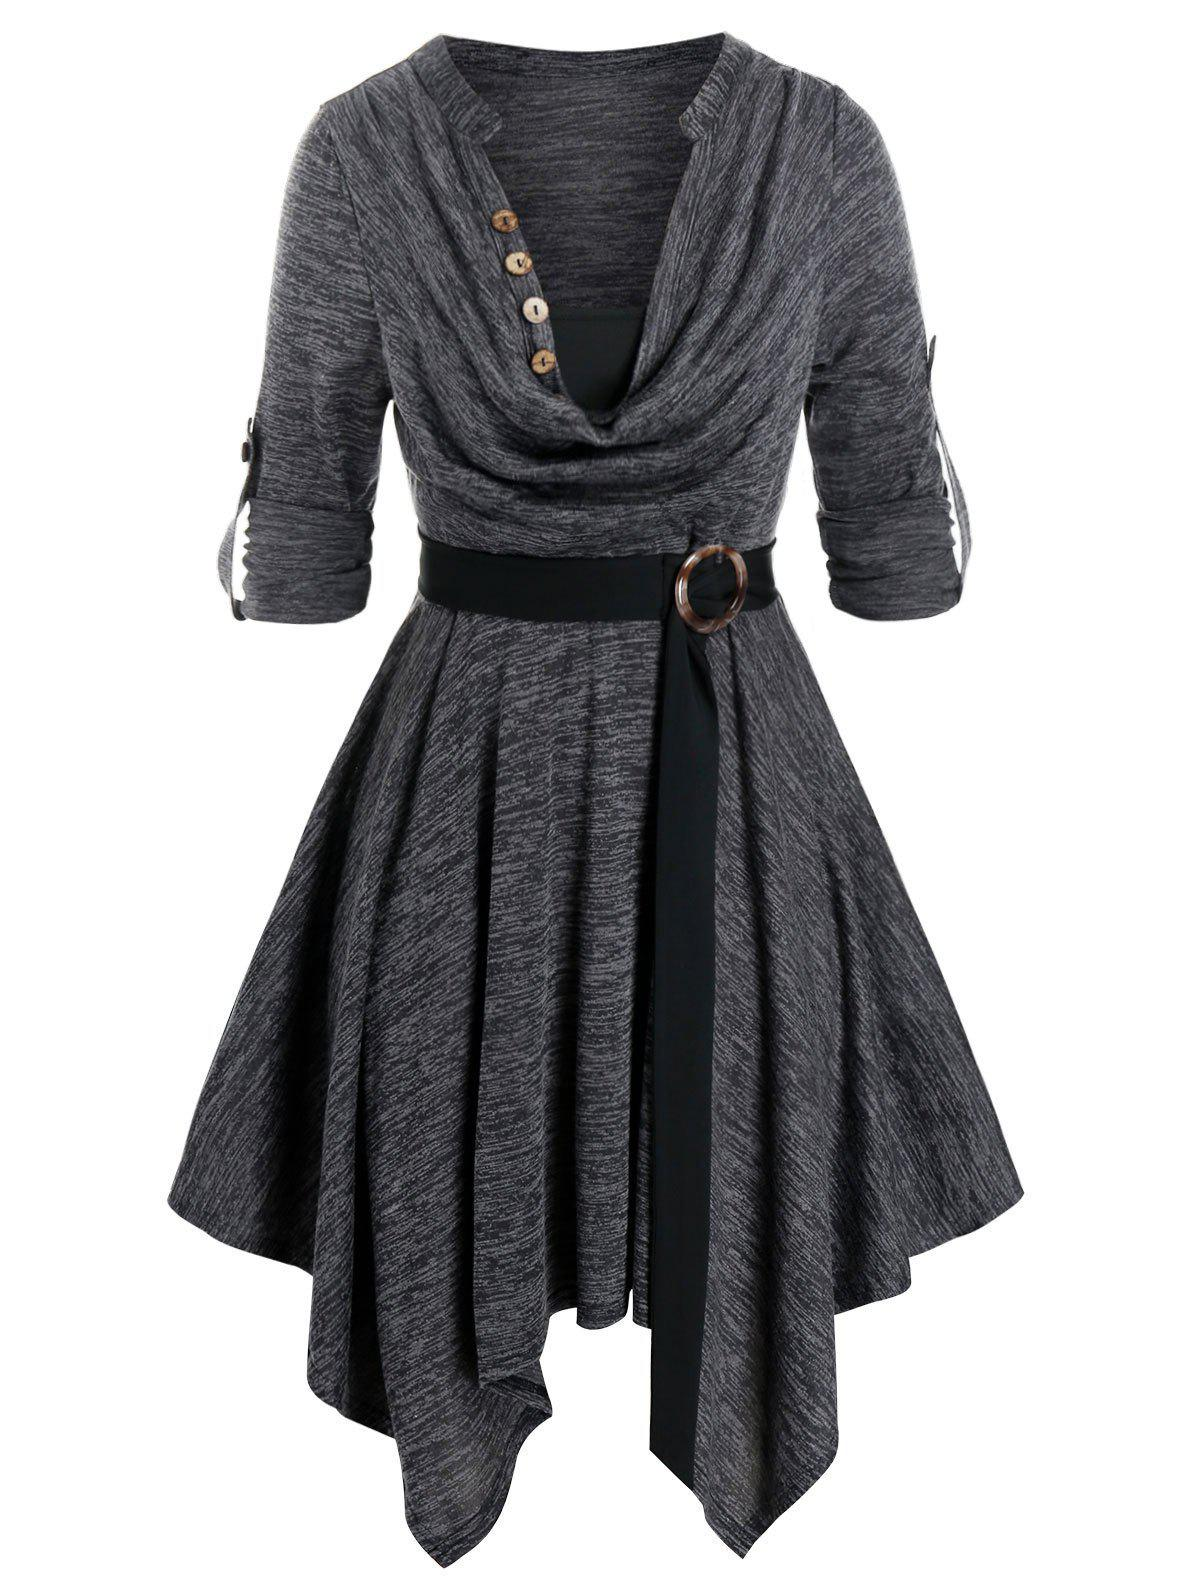 Plus Size Space Dye Cowl Neck Handkerchief Roll Up Sleeve Dress - GRAY L